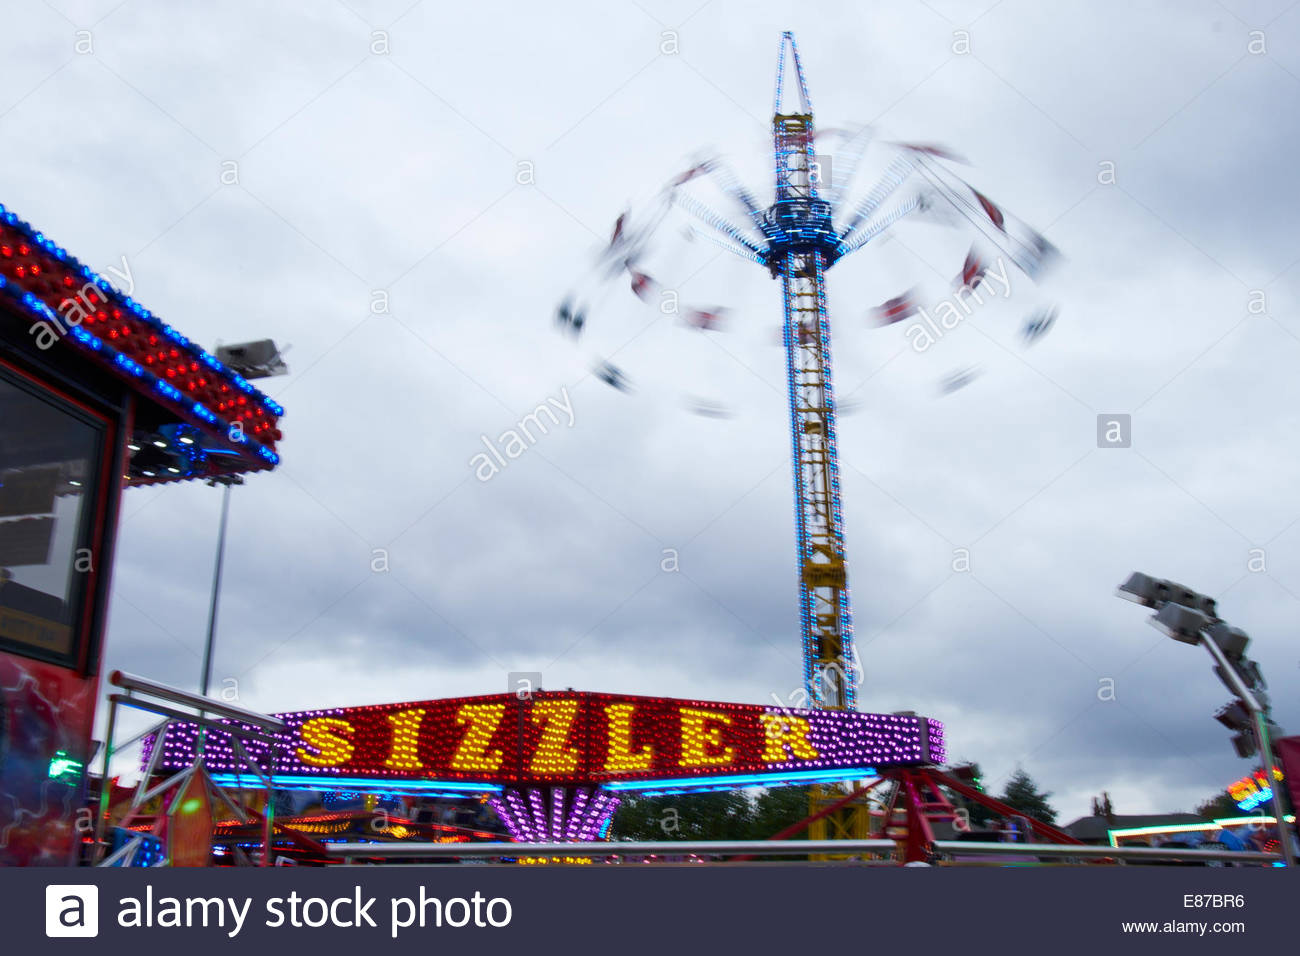 Nottingham, UK, 1 October 2014  Start of Goose Fair on The Forest, Nottingham, UK. It will run from 1st to 5th October - Stock Image